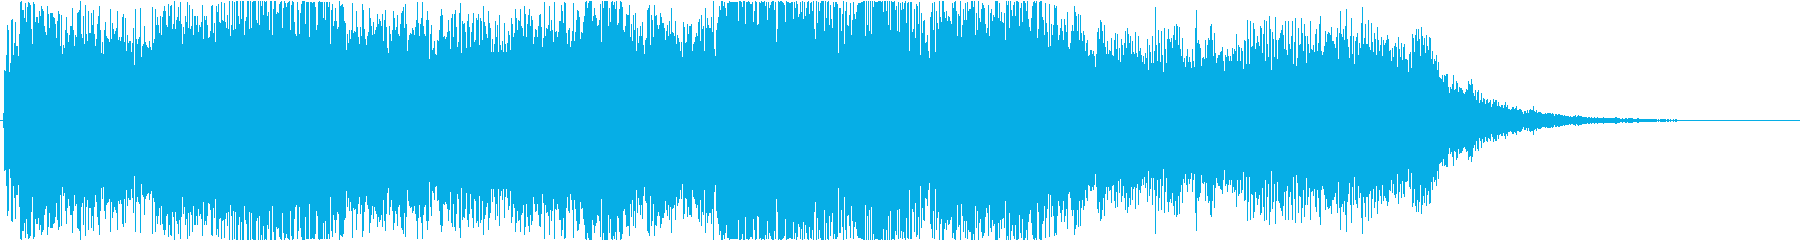 Magnificent short jingle of the orchestra's reproduced waveform